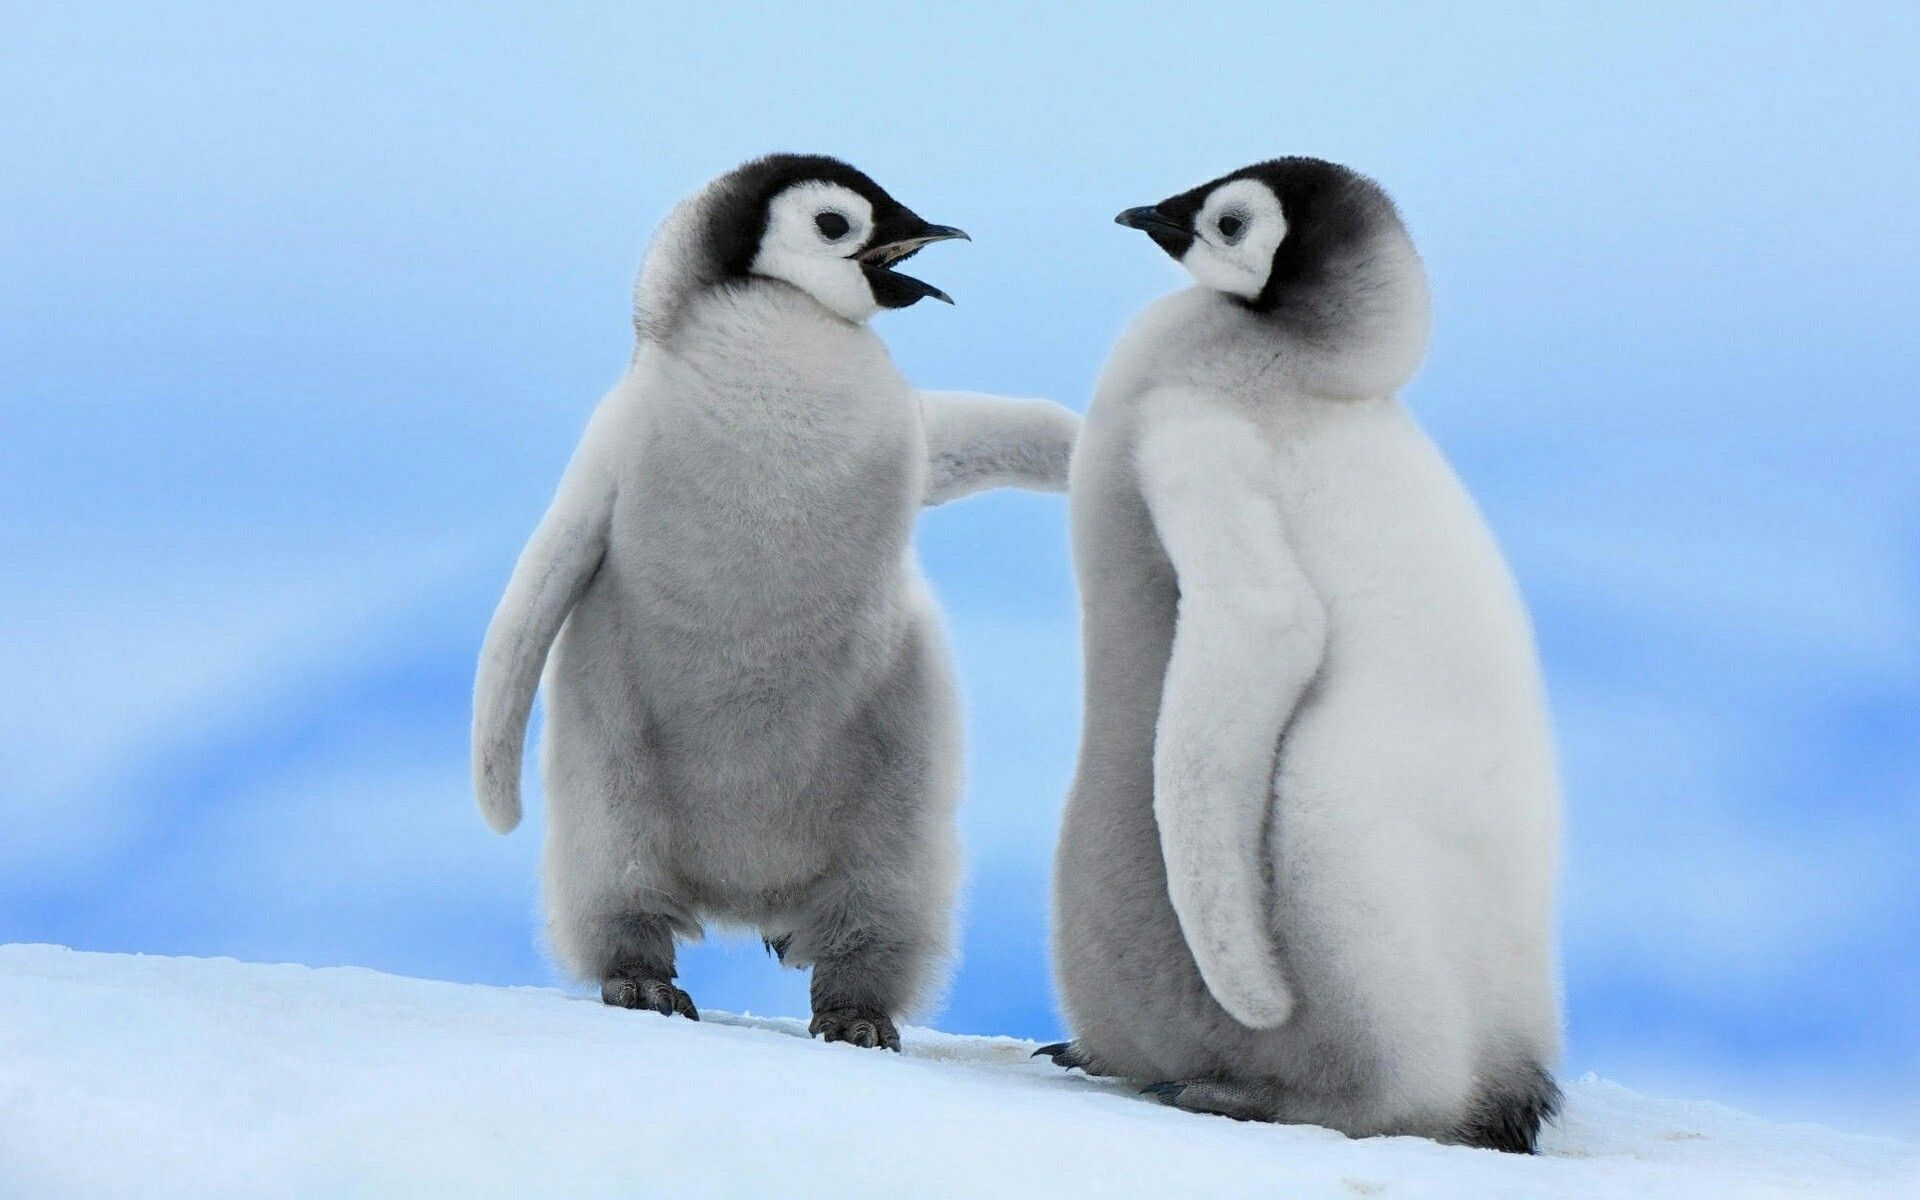 Pin By Binu Eapen On Aww Baby Animals Pictures Baby Animals Penguins